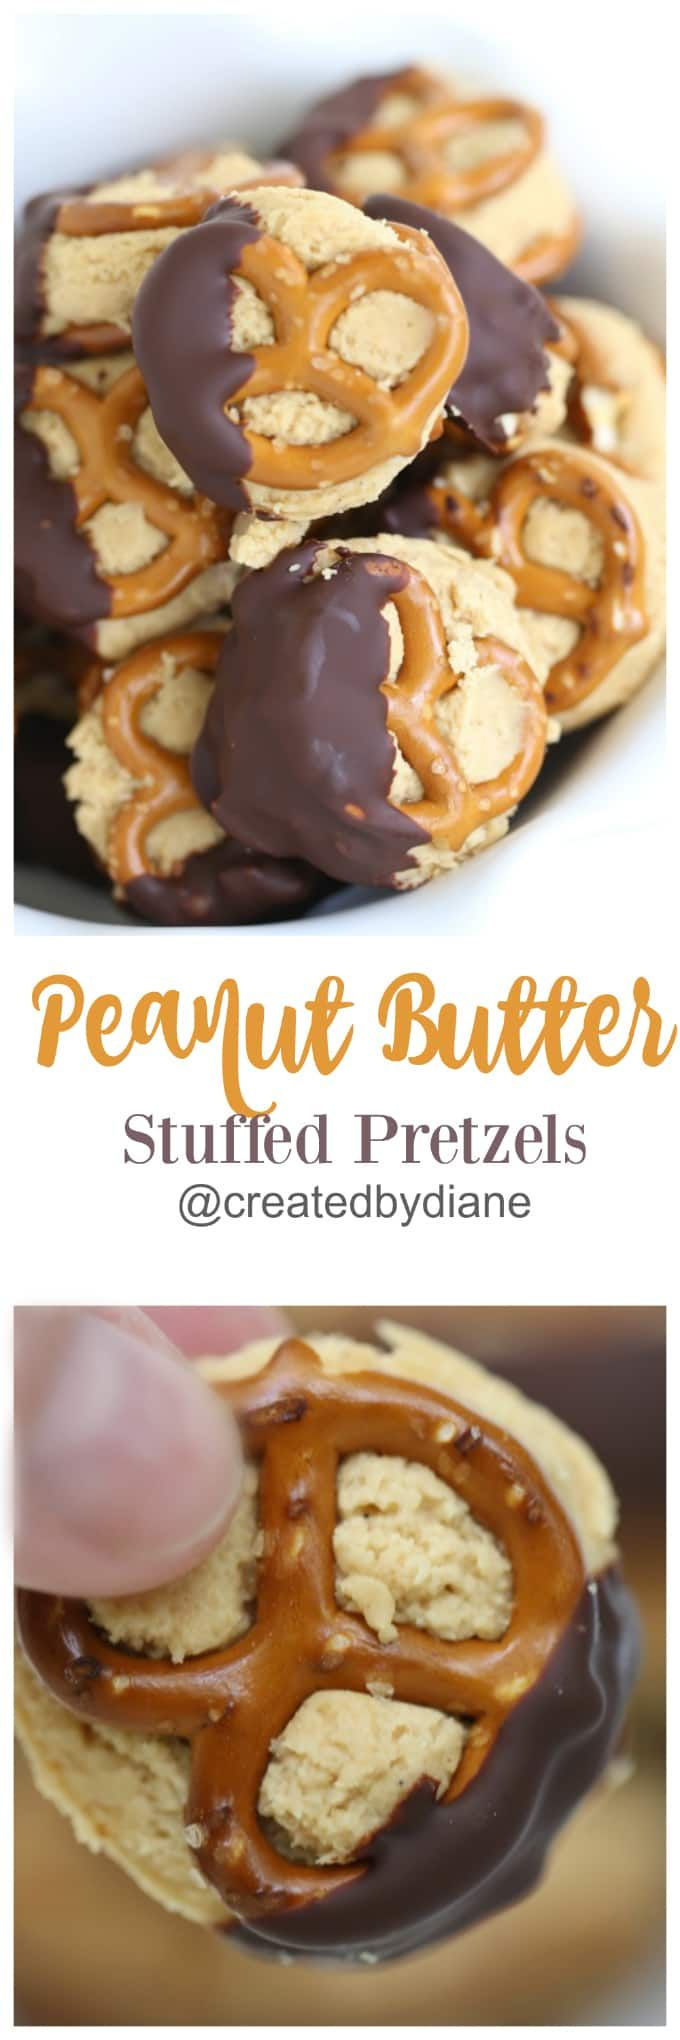 Sweet and salty snacking… who wouldn't love a treat like that? These peanut butter stuffed pretzels will have you wishing it was snack time! I don't know about you, but pretzels are a favorite quick snack around my house. They're crispy, crunchy, salty and oh-so-satisfying! I also love the many varied shapes they come in.Just keeps things fun, and I'm all about fun… especially delicious fun! They keep things fun, and I'm all about fun… especially delicious fun! Of course, ...